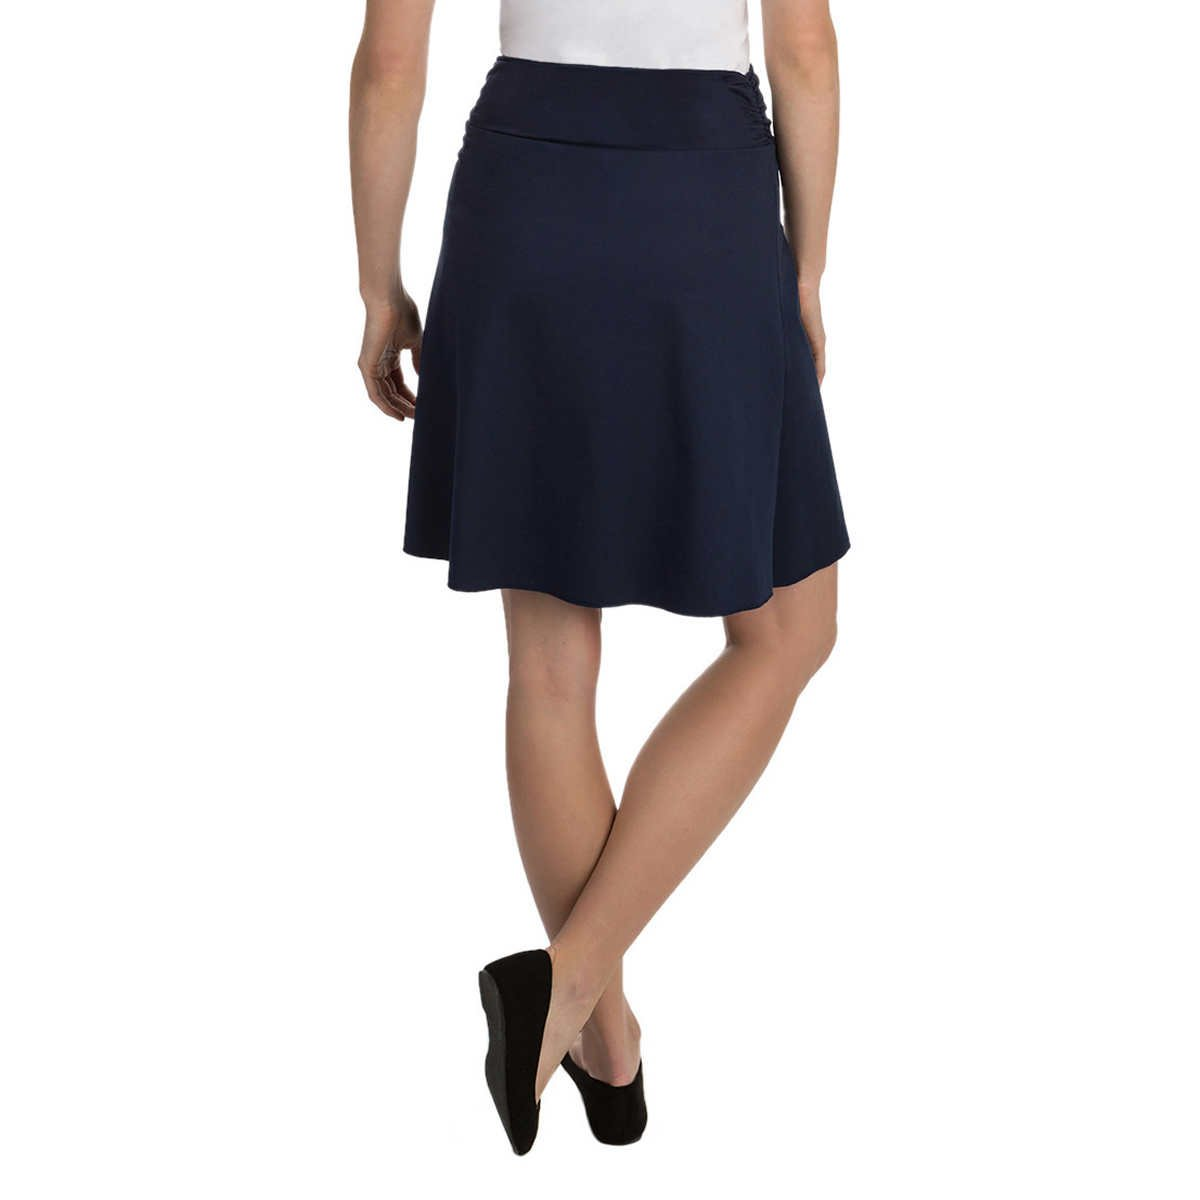 19d5293f3 Colorado Company Women's Reversible Tranquility Skirt at Amazon Women's  Clothing store: